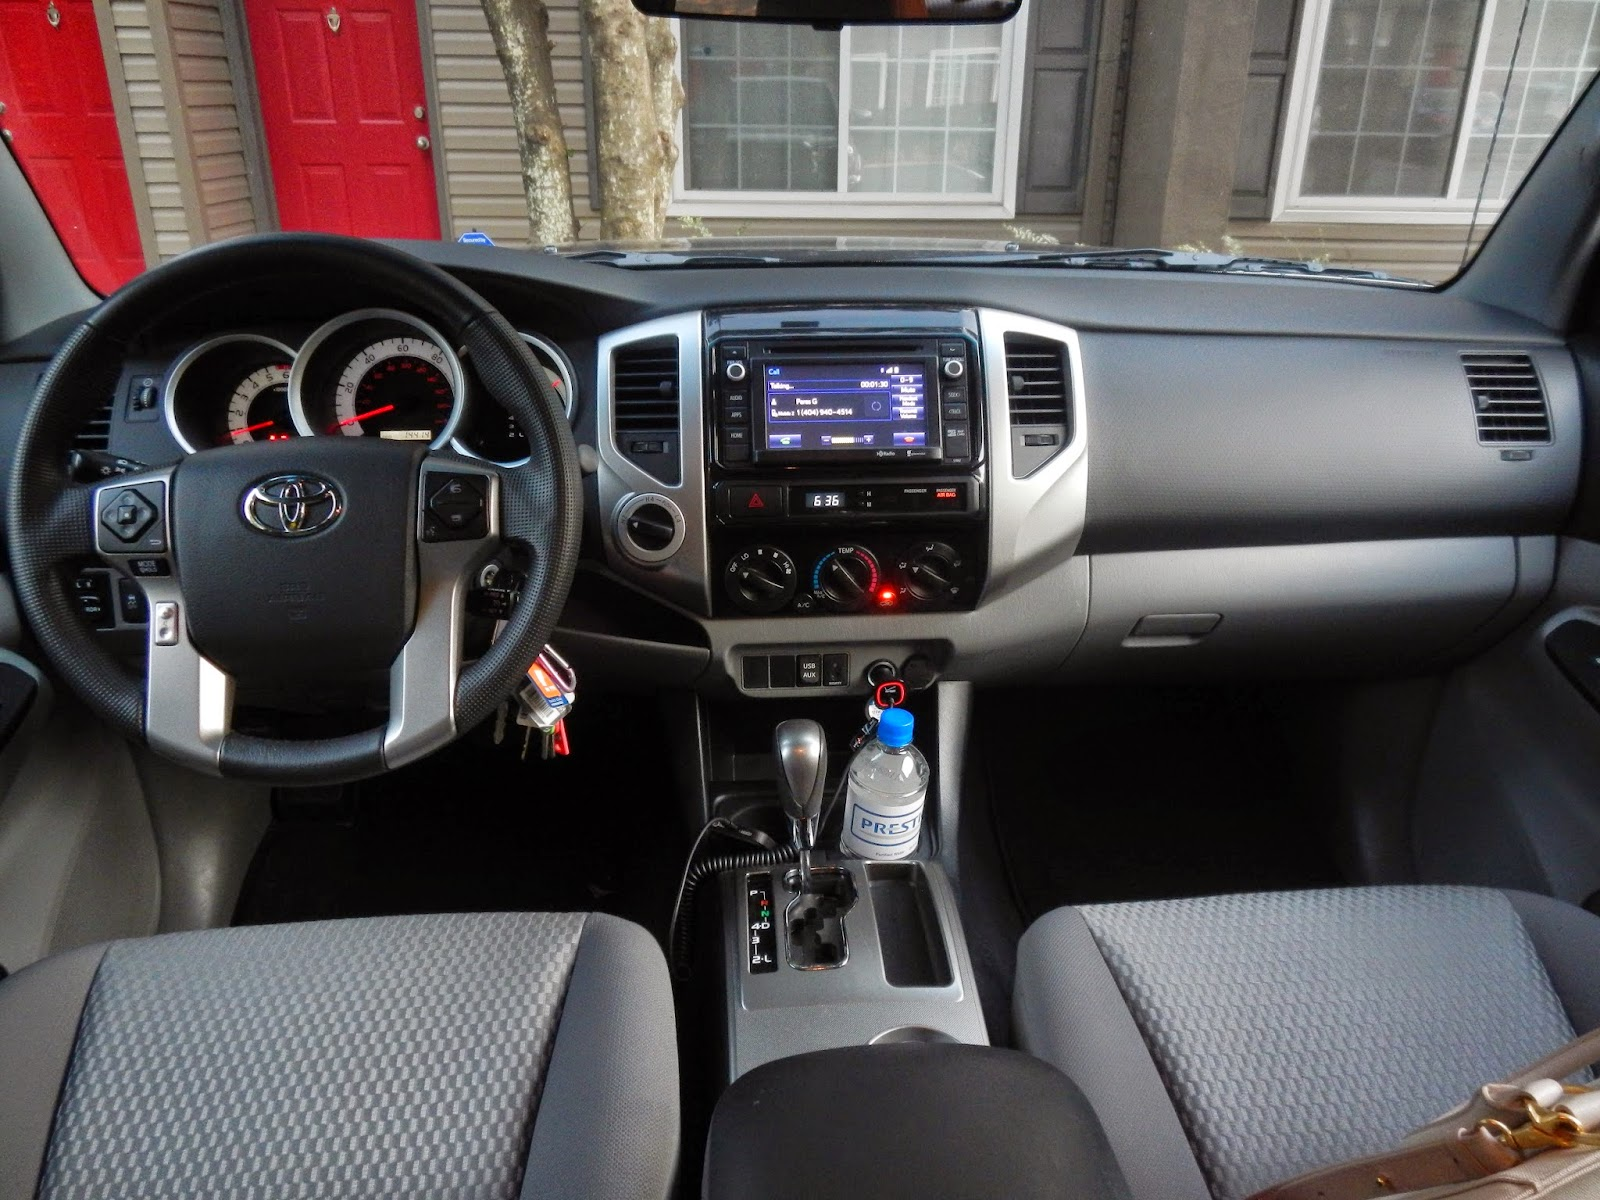 The 2014 Toyota Tacoma Offers An Interior Thatu0027s Clean, Functional And  Well Suited To The Needs Of Truck Owners. Instruments And Controls Are Easy  To See ...